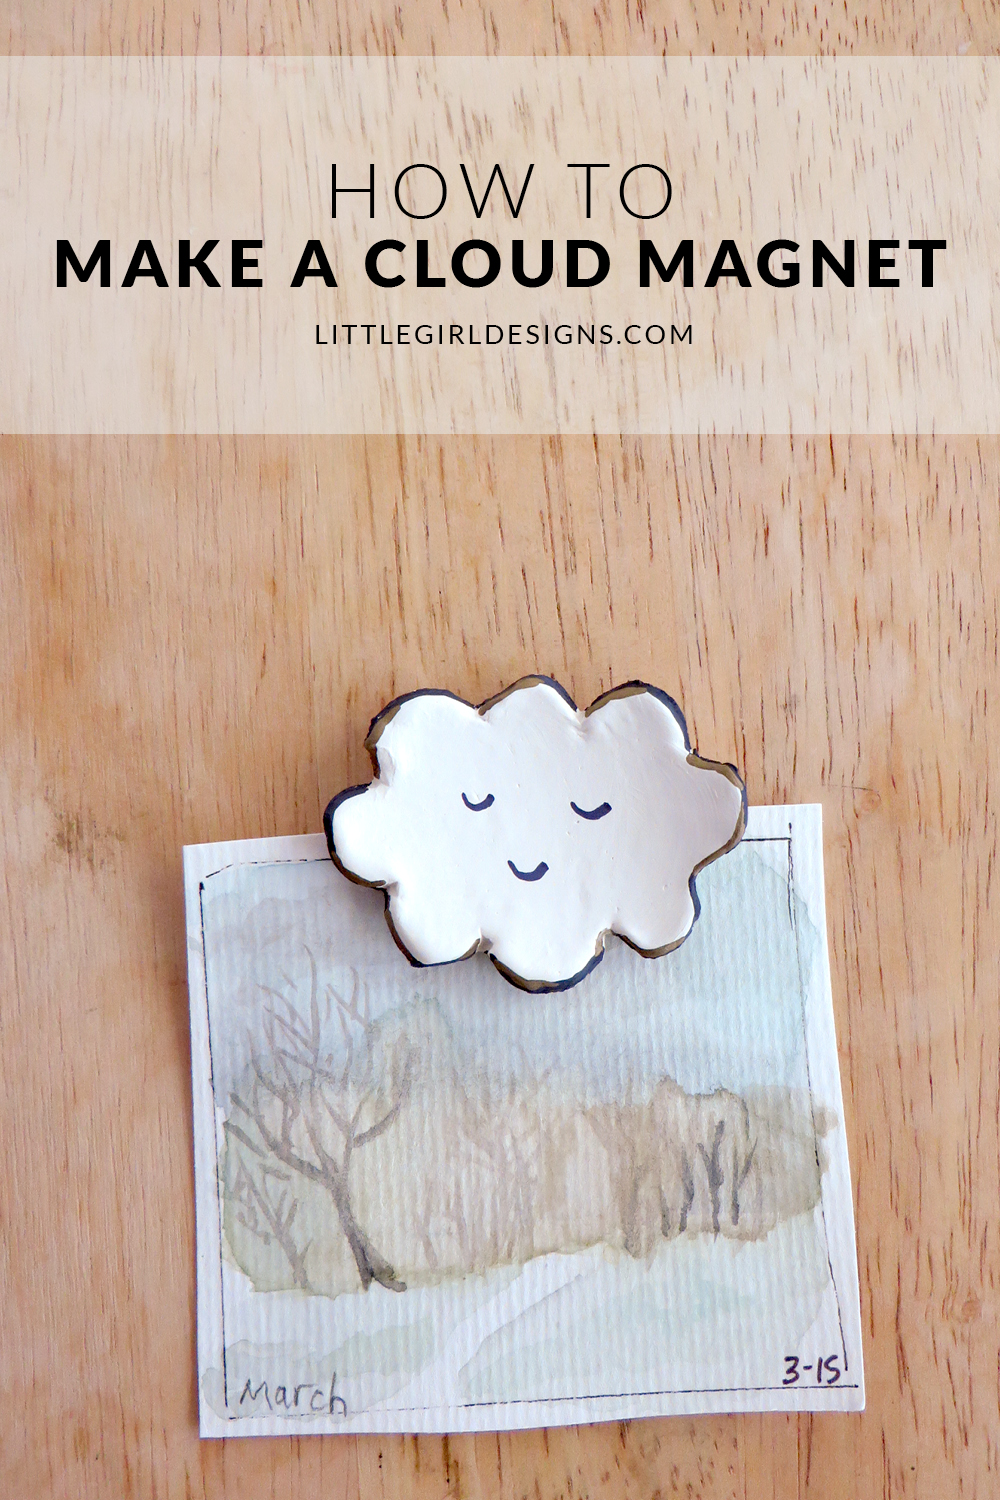 How to Make a Cloud Magnet - Even if you're new to working with air-dry clay, you can easily make a cloud magnet (or a whole set of sweet magnets!) p.s. these make great gifts! via littlegirldesigns.com